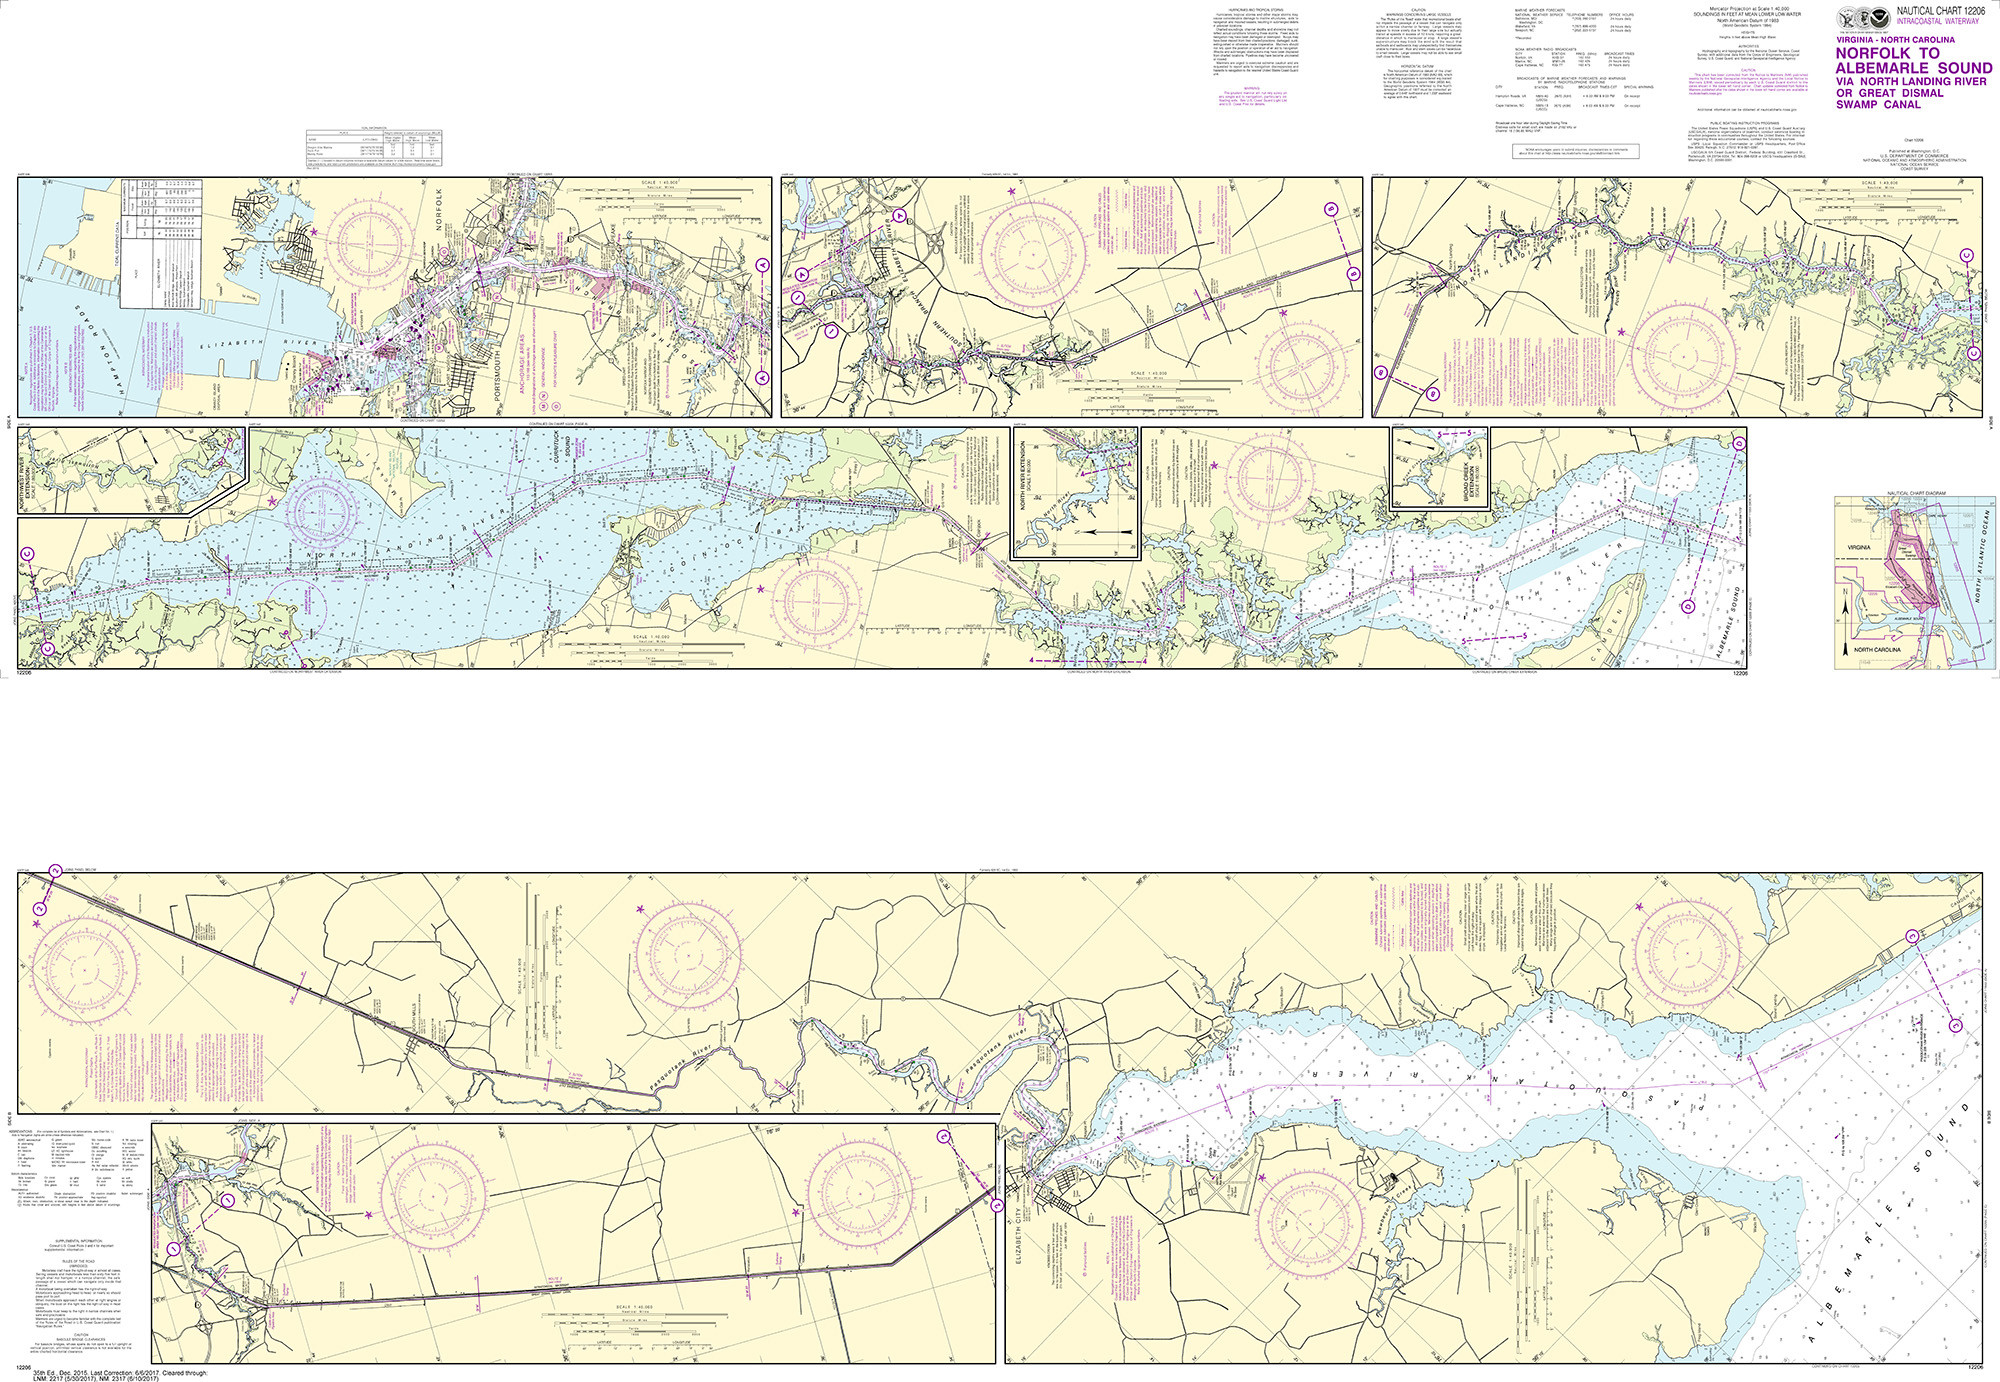 NOAA Nautical Chart - 12206 Intracoastal Waterway Norfolk to Albemarle  Sound via North Landing River or Dismal Swamp Canal